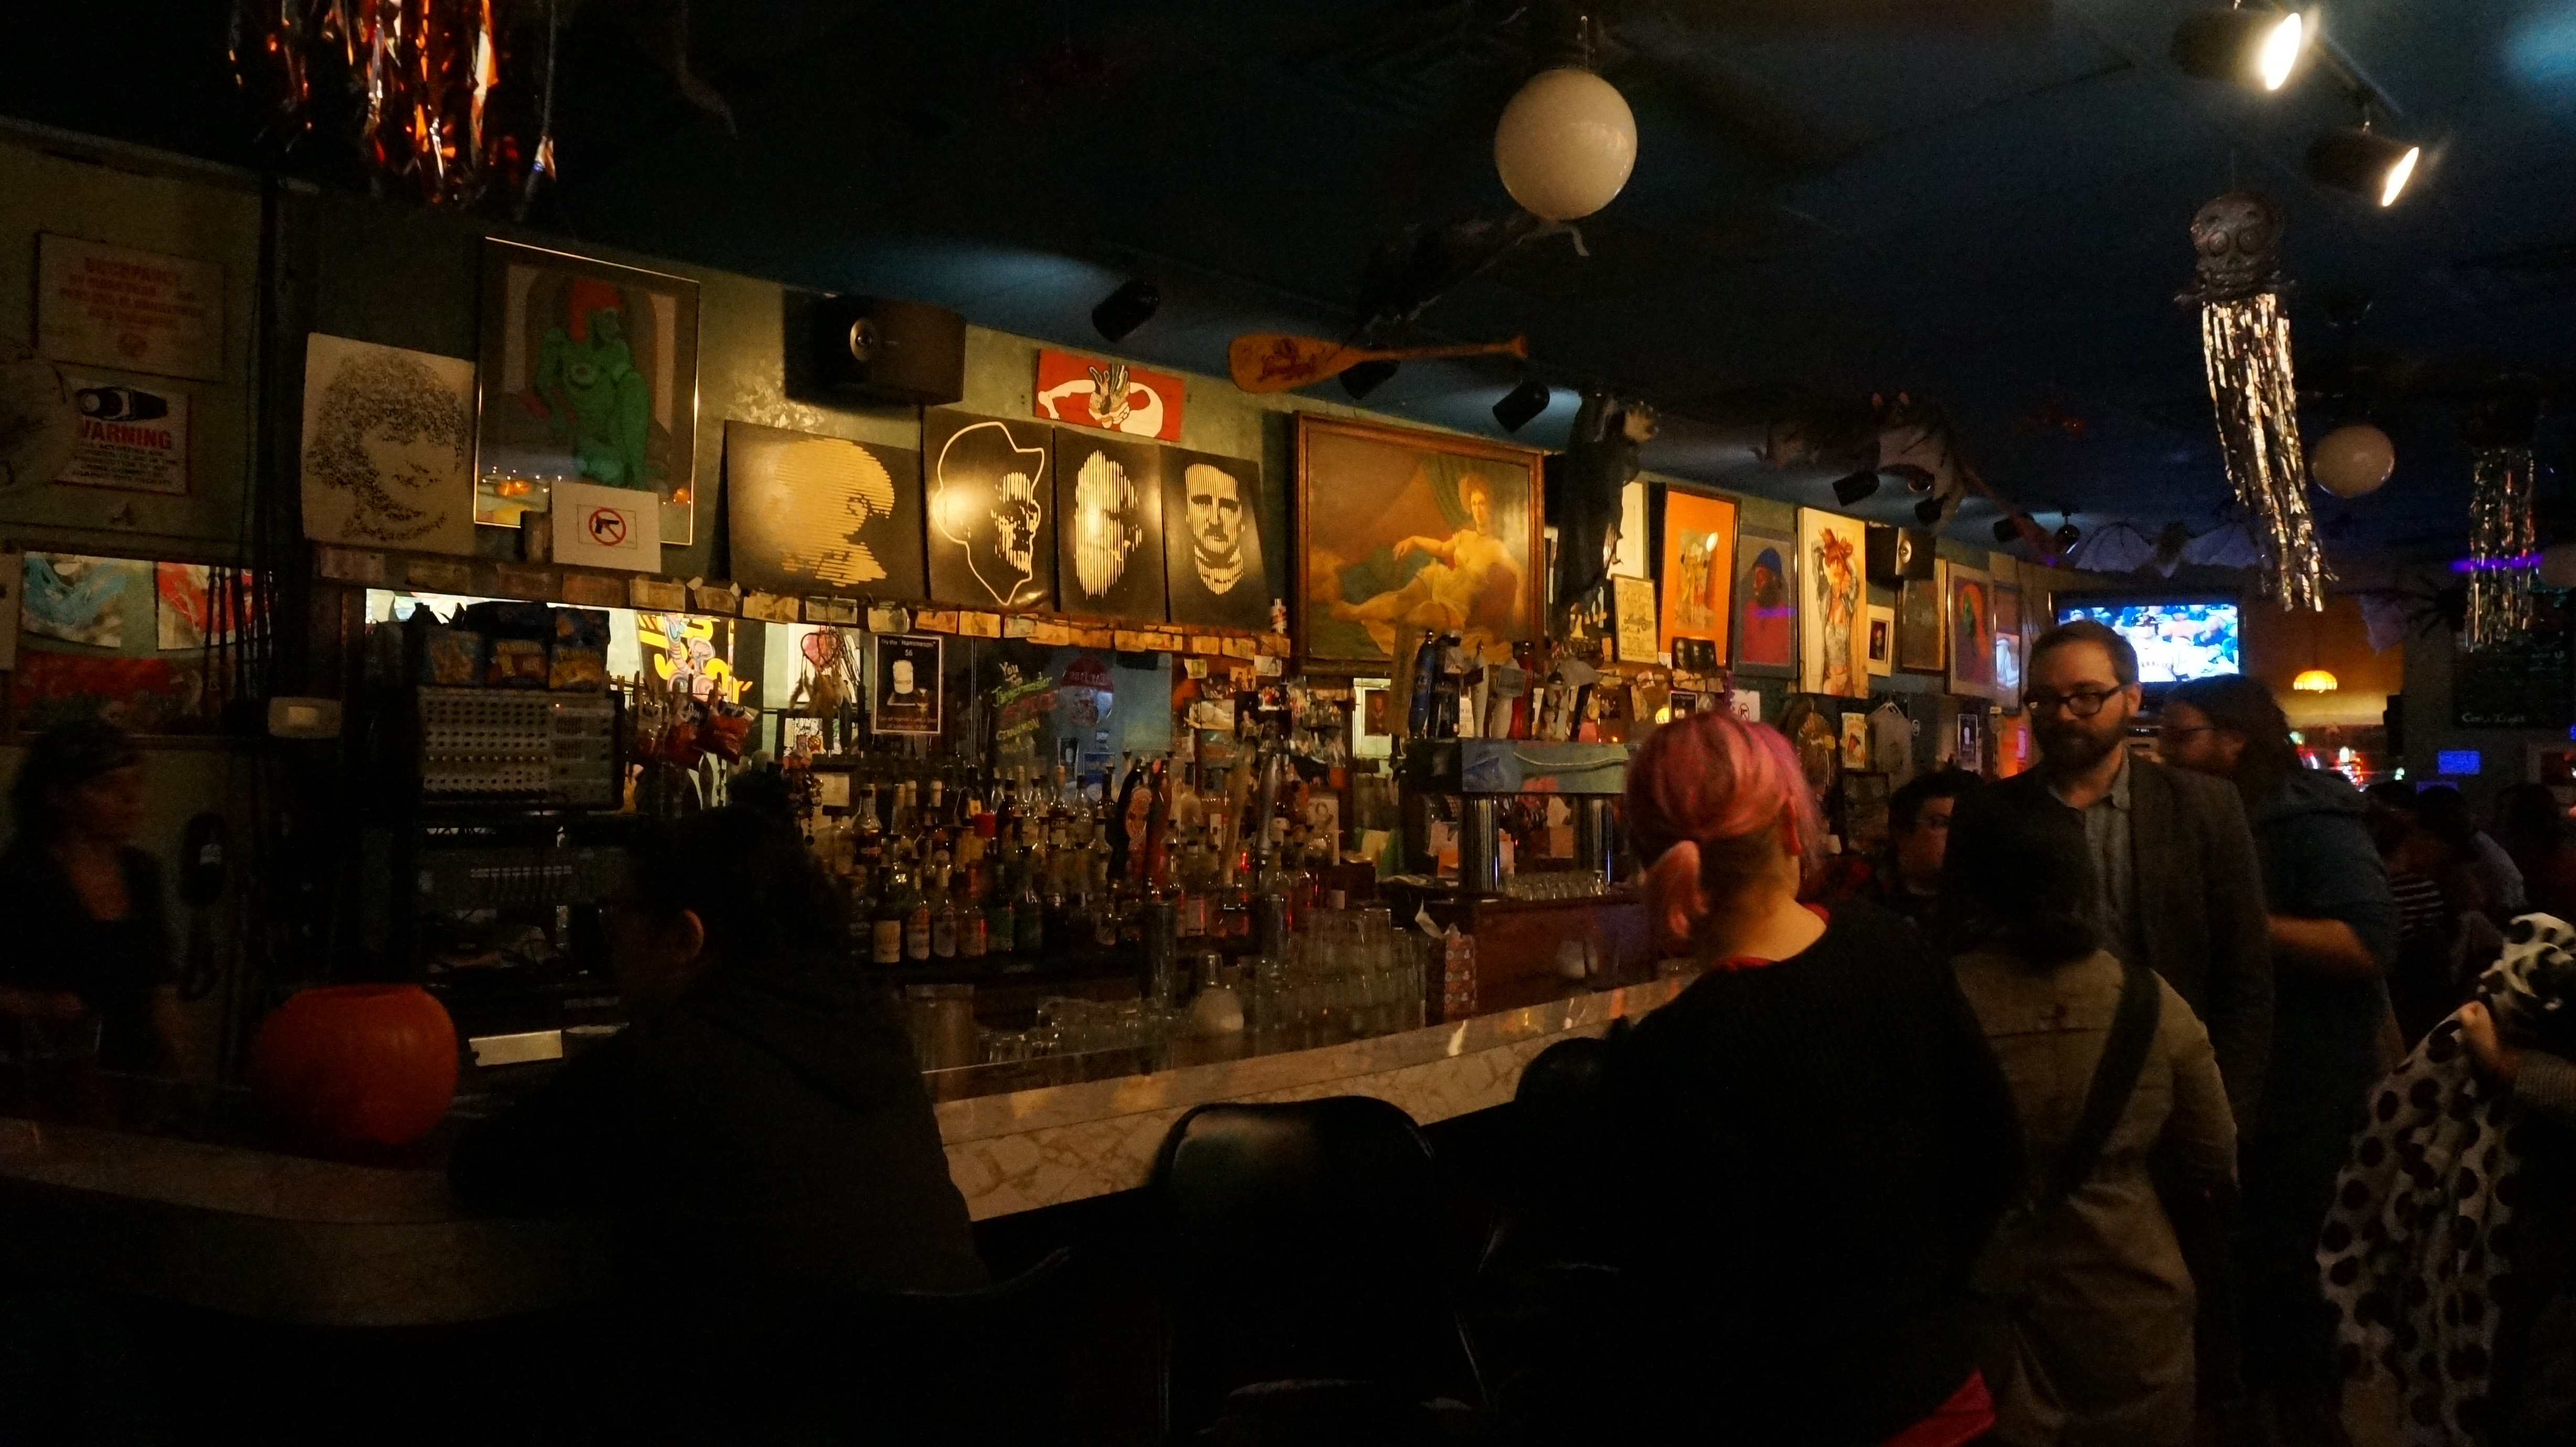 Image: Photo of the bar area at Miss Spoken at the Gallery Cabaret. Lining the wall along the back of the bar area are several drawings, paintings, and photographs. Most images show faces and/or bodies, but are otherwise diverse, reflecting a range of styles, ages, color palettes, etc. Objects like oars and metallic streamers hang from the ceiling. In the foreground, patrons mingle in the dim bar. Photo by [Photographer]. Courtesy of Miss Spoken.